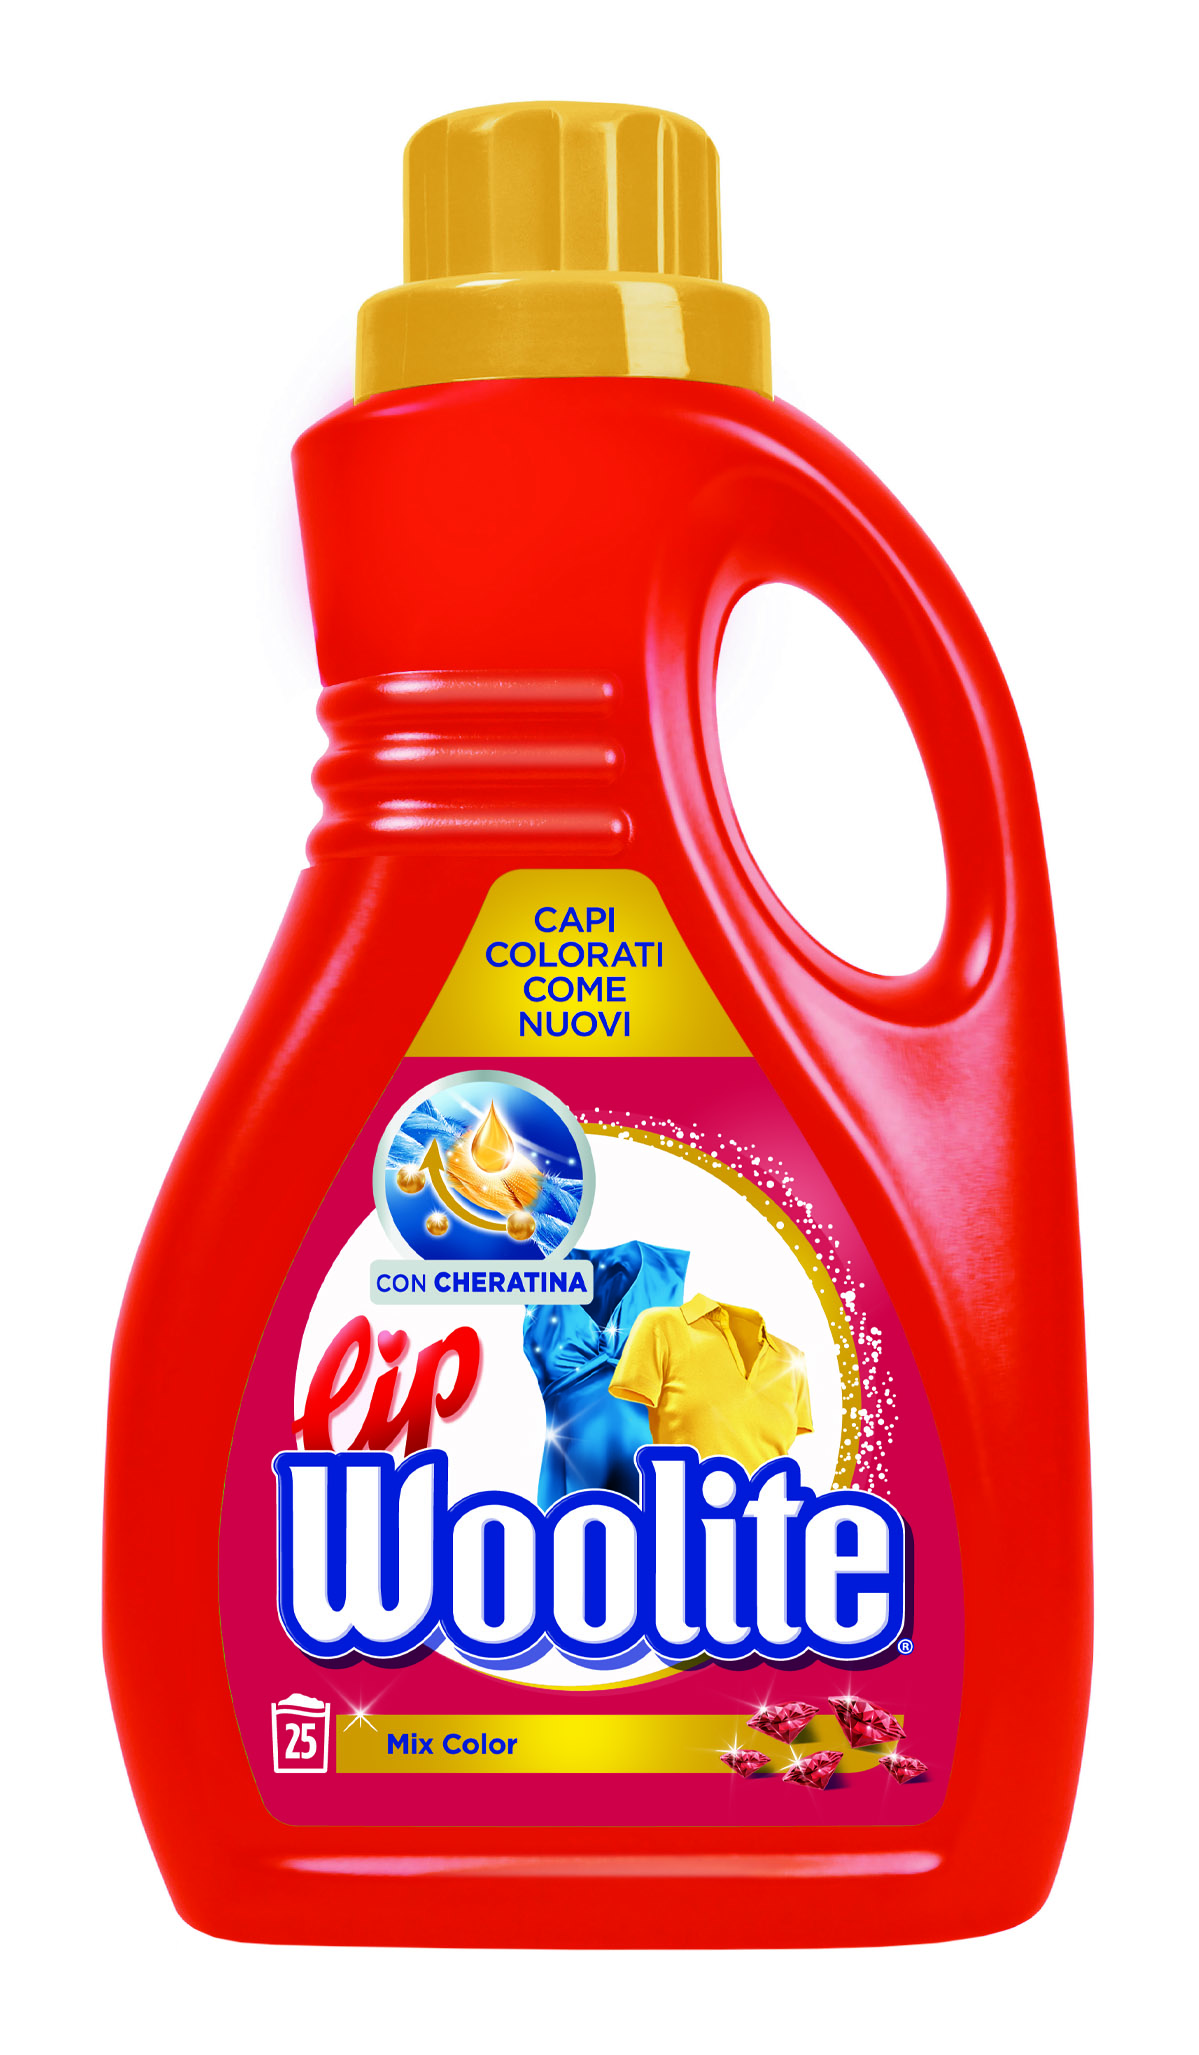 LIP WOOLITE LIQUIDO MIX COLOR 1.500 LT